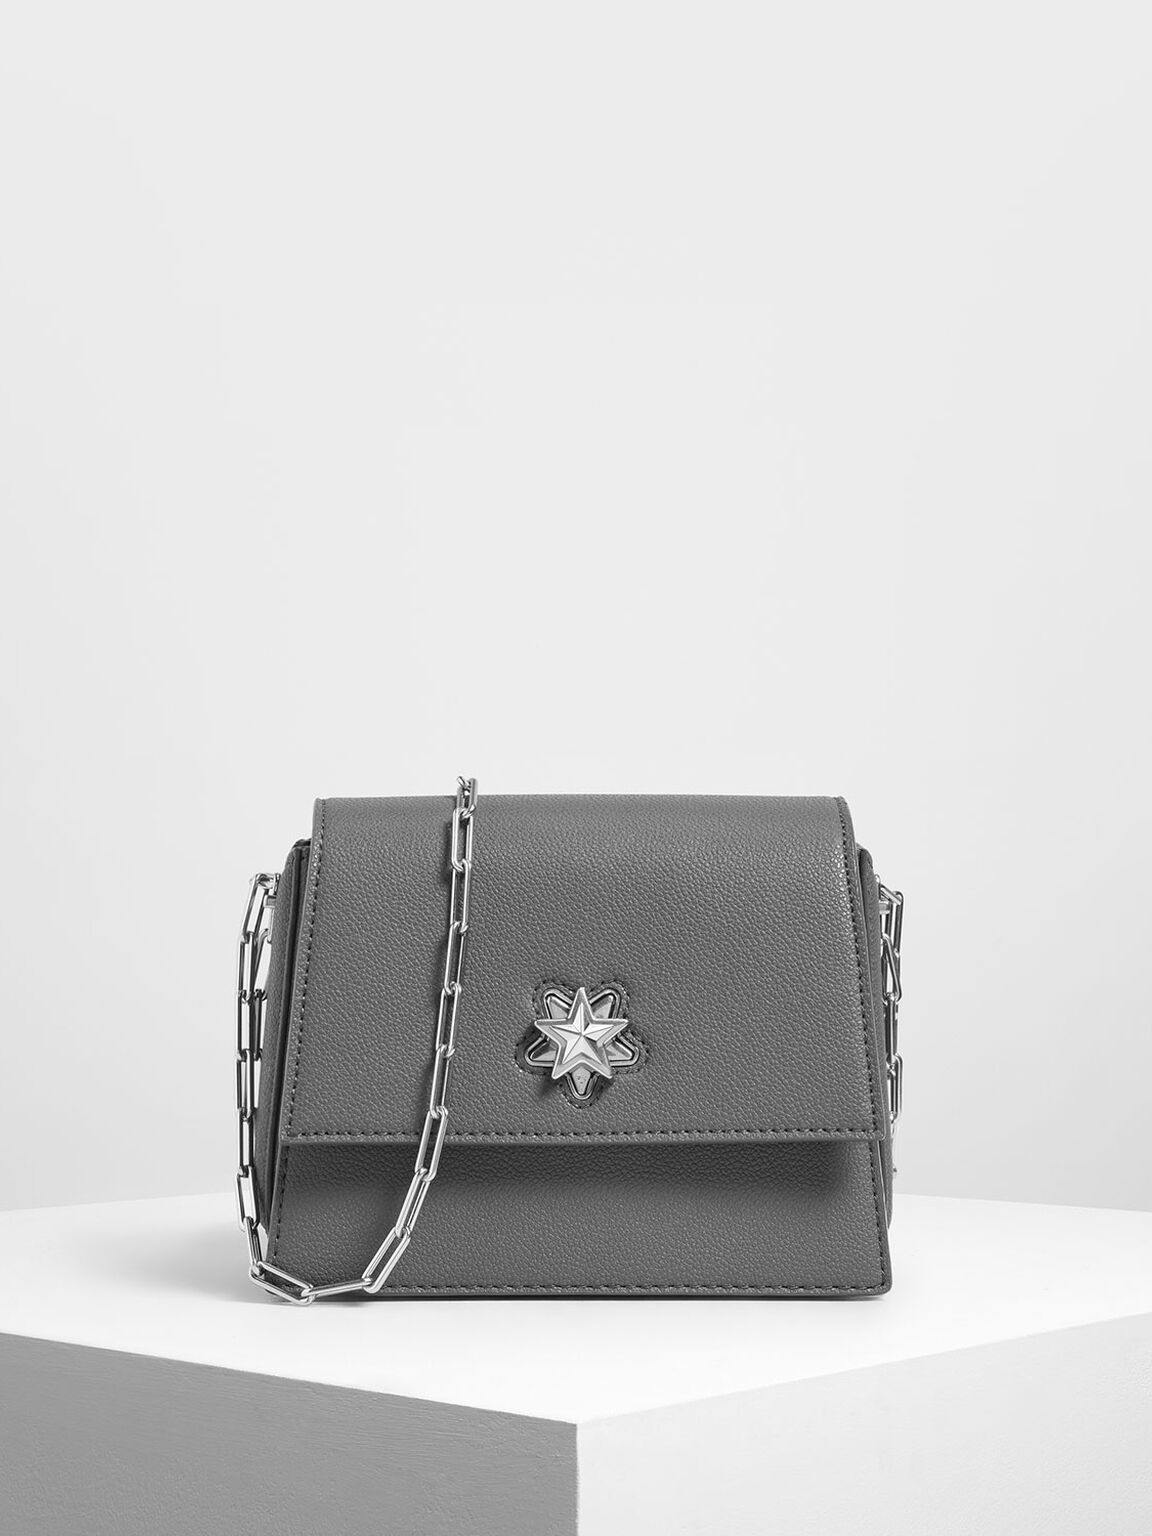 Star Buckle Crossbody Bag, Grey, hi-res